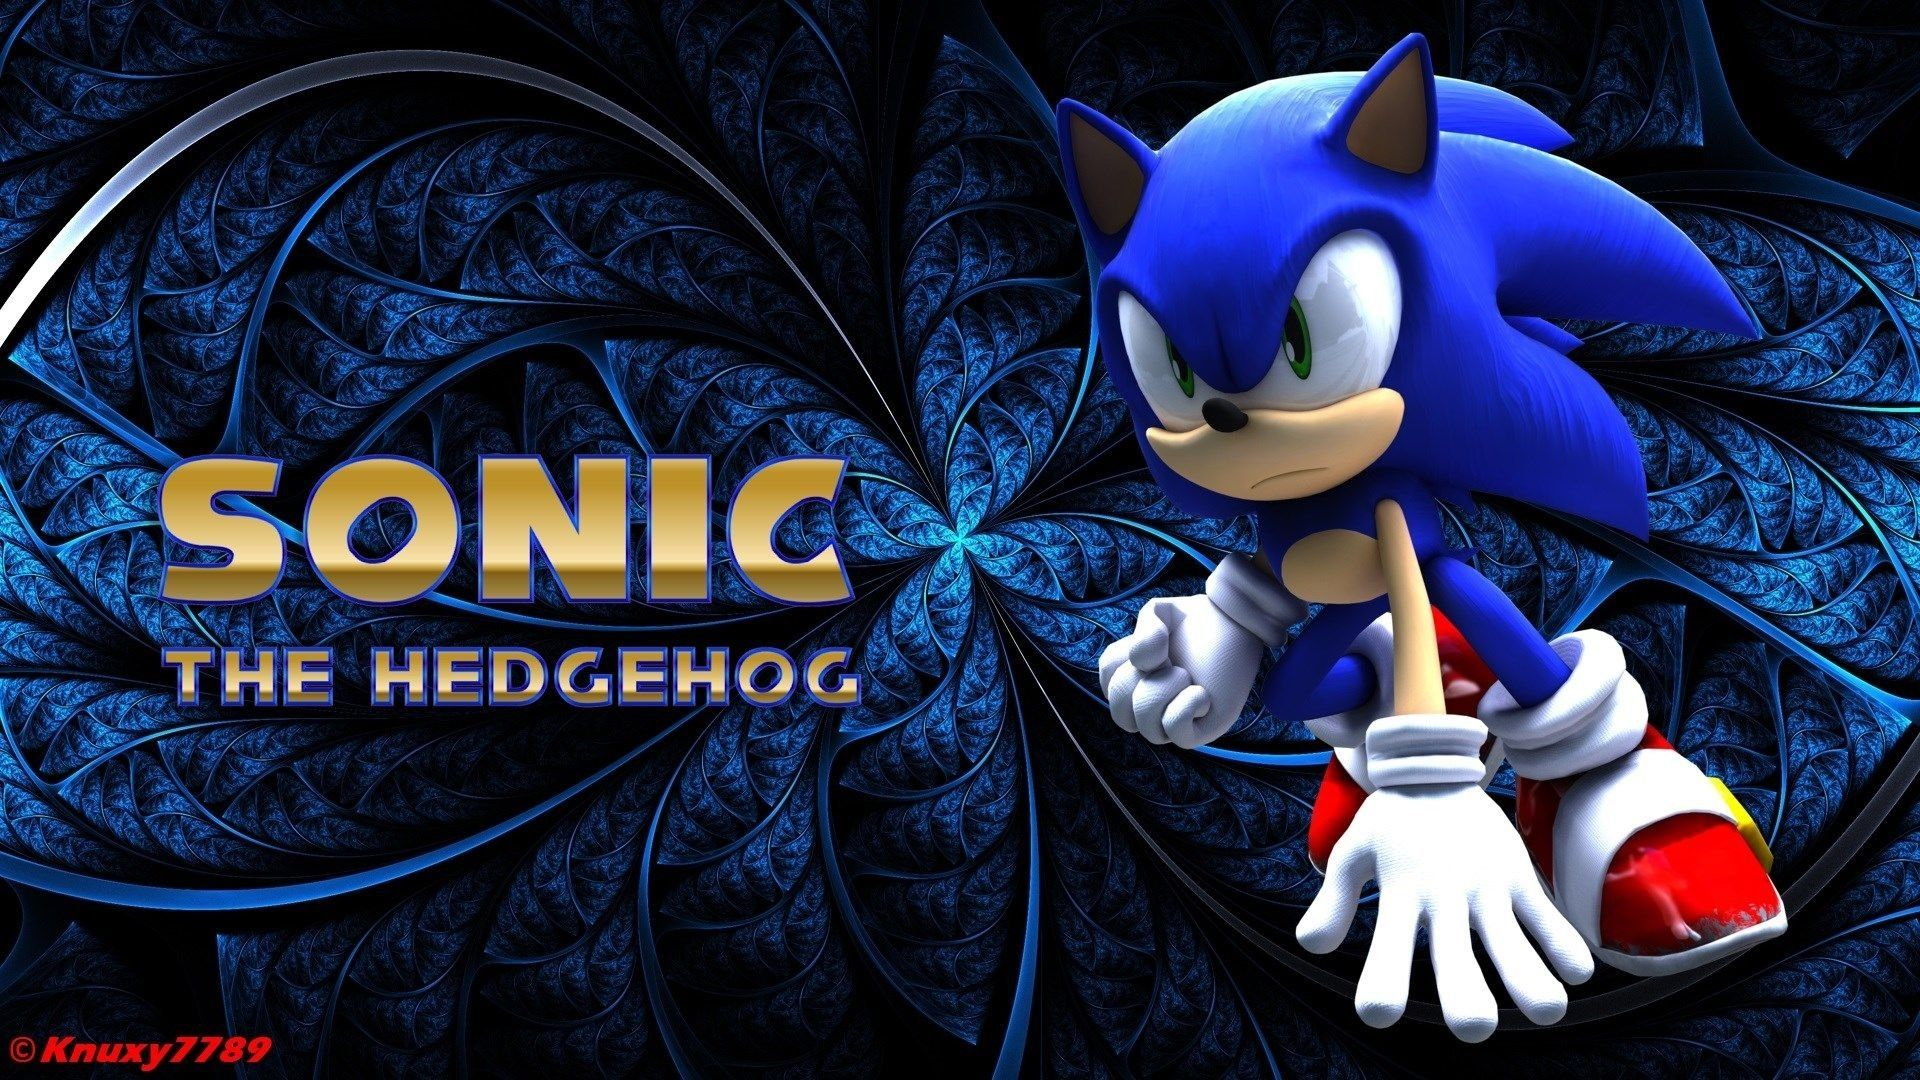 74 Sonic Wallpapers On Wallpaperplay Inside Sonic The Hedgehog Wallpapers Di 2020 Dengan Gambar